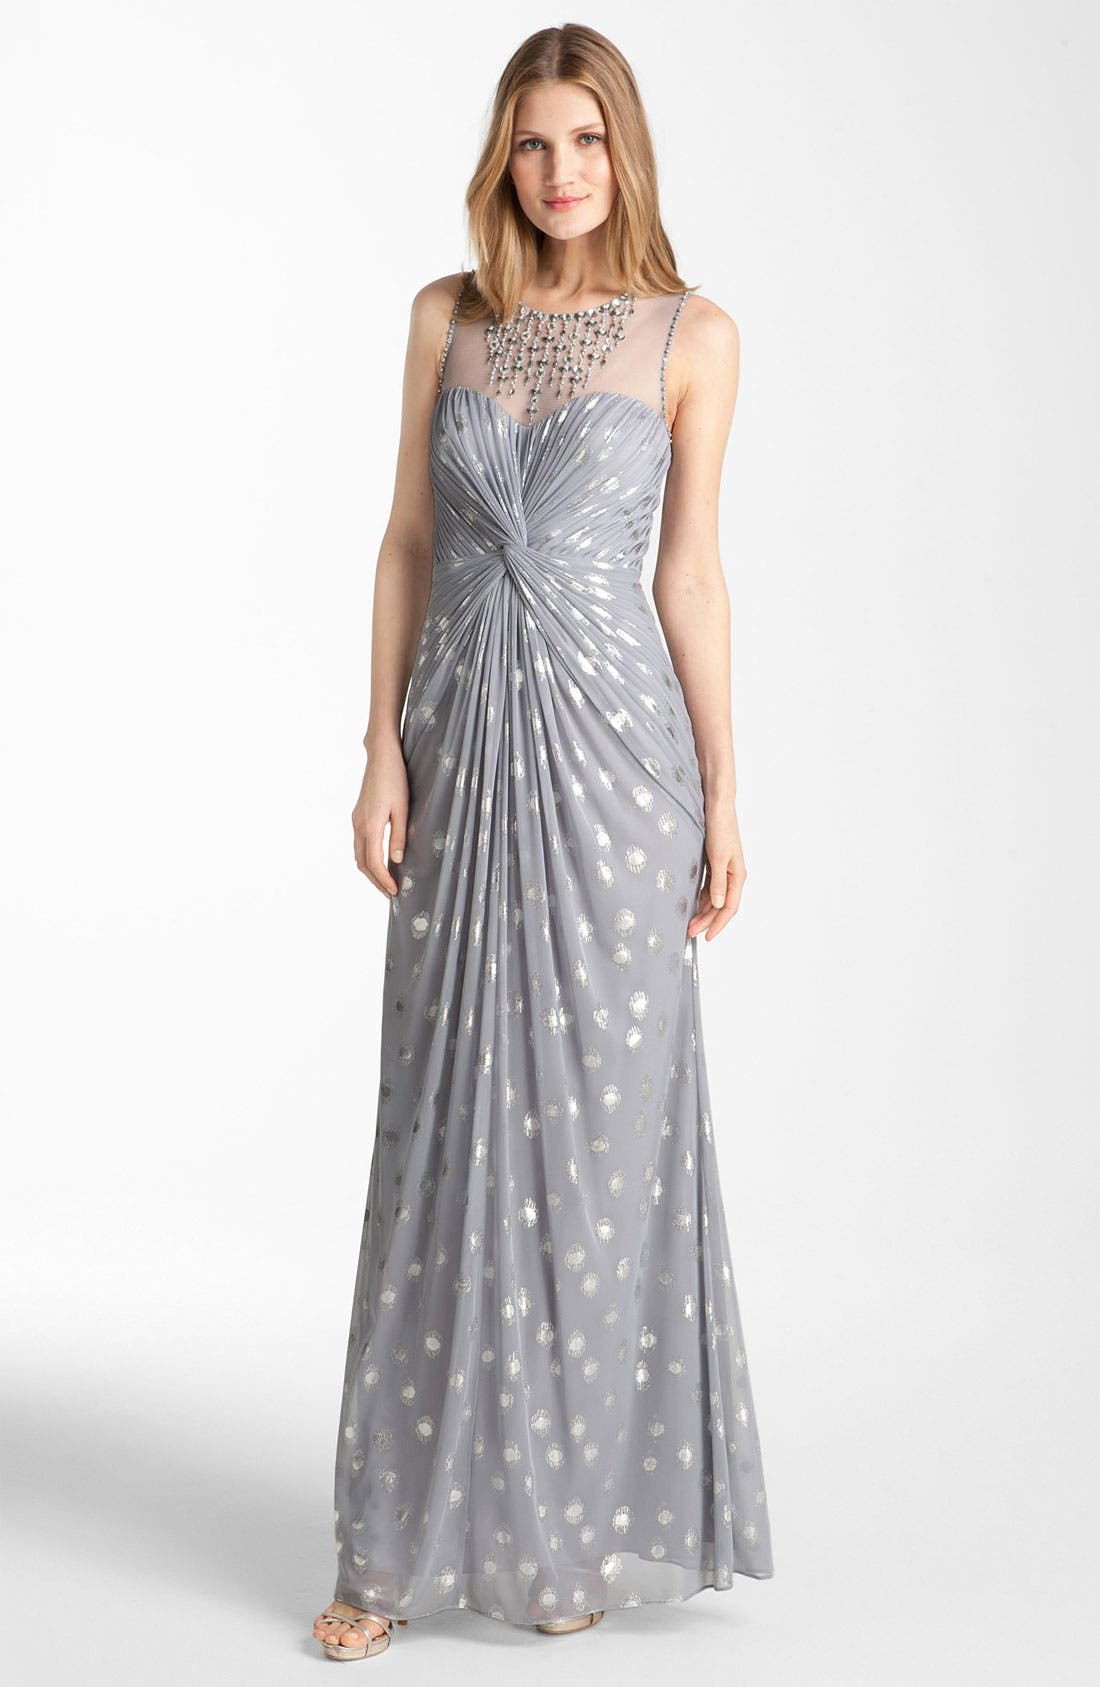 Main Image - Adrianna Papell Knot Front Metallic Mesh Gown